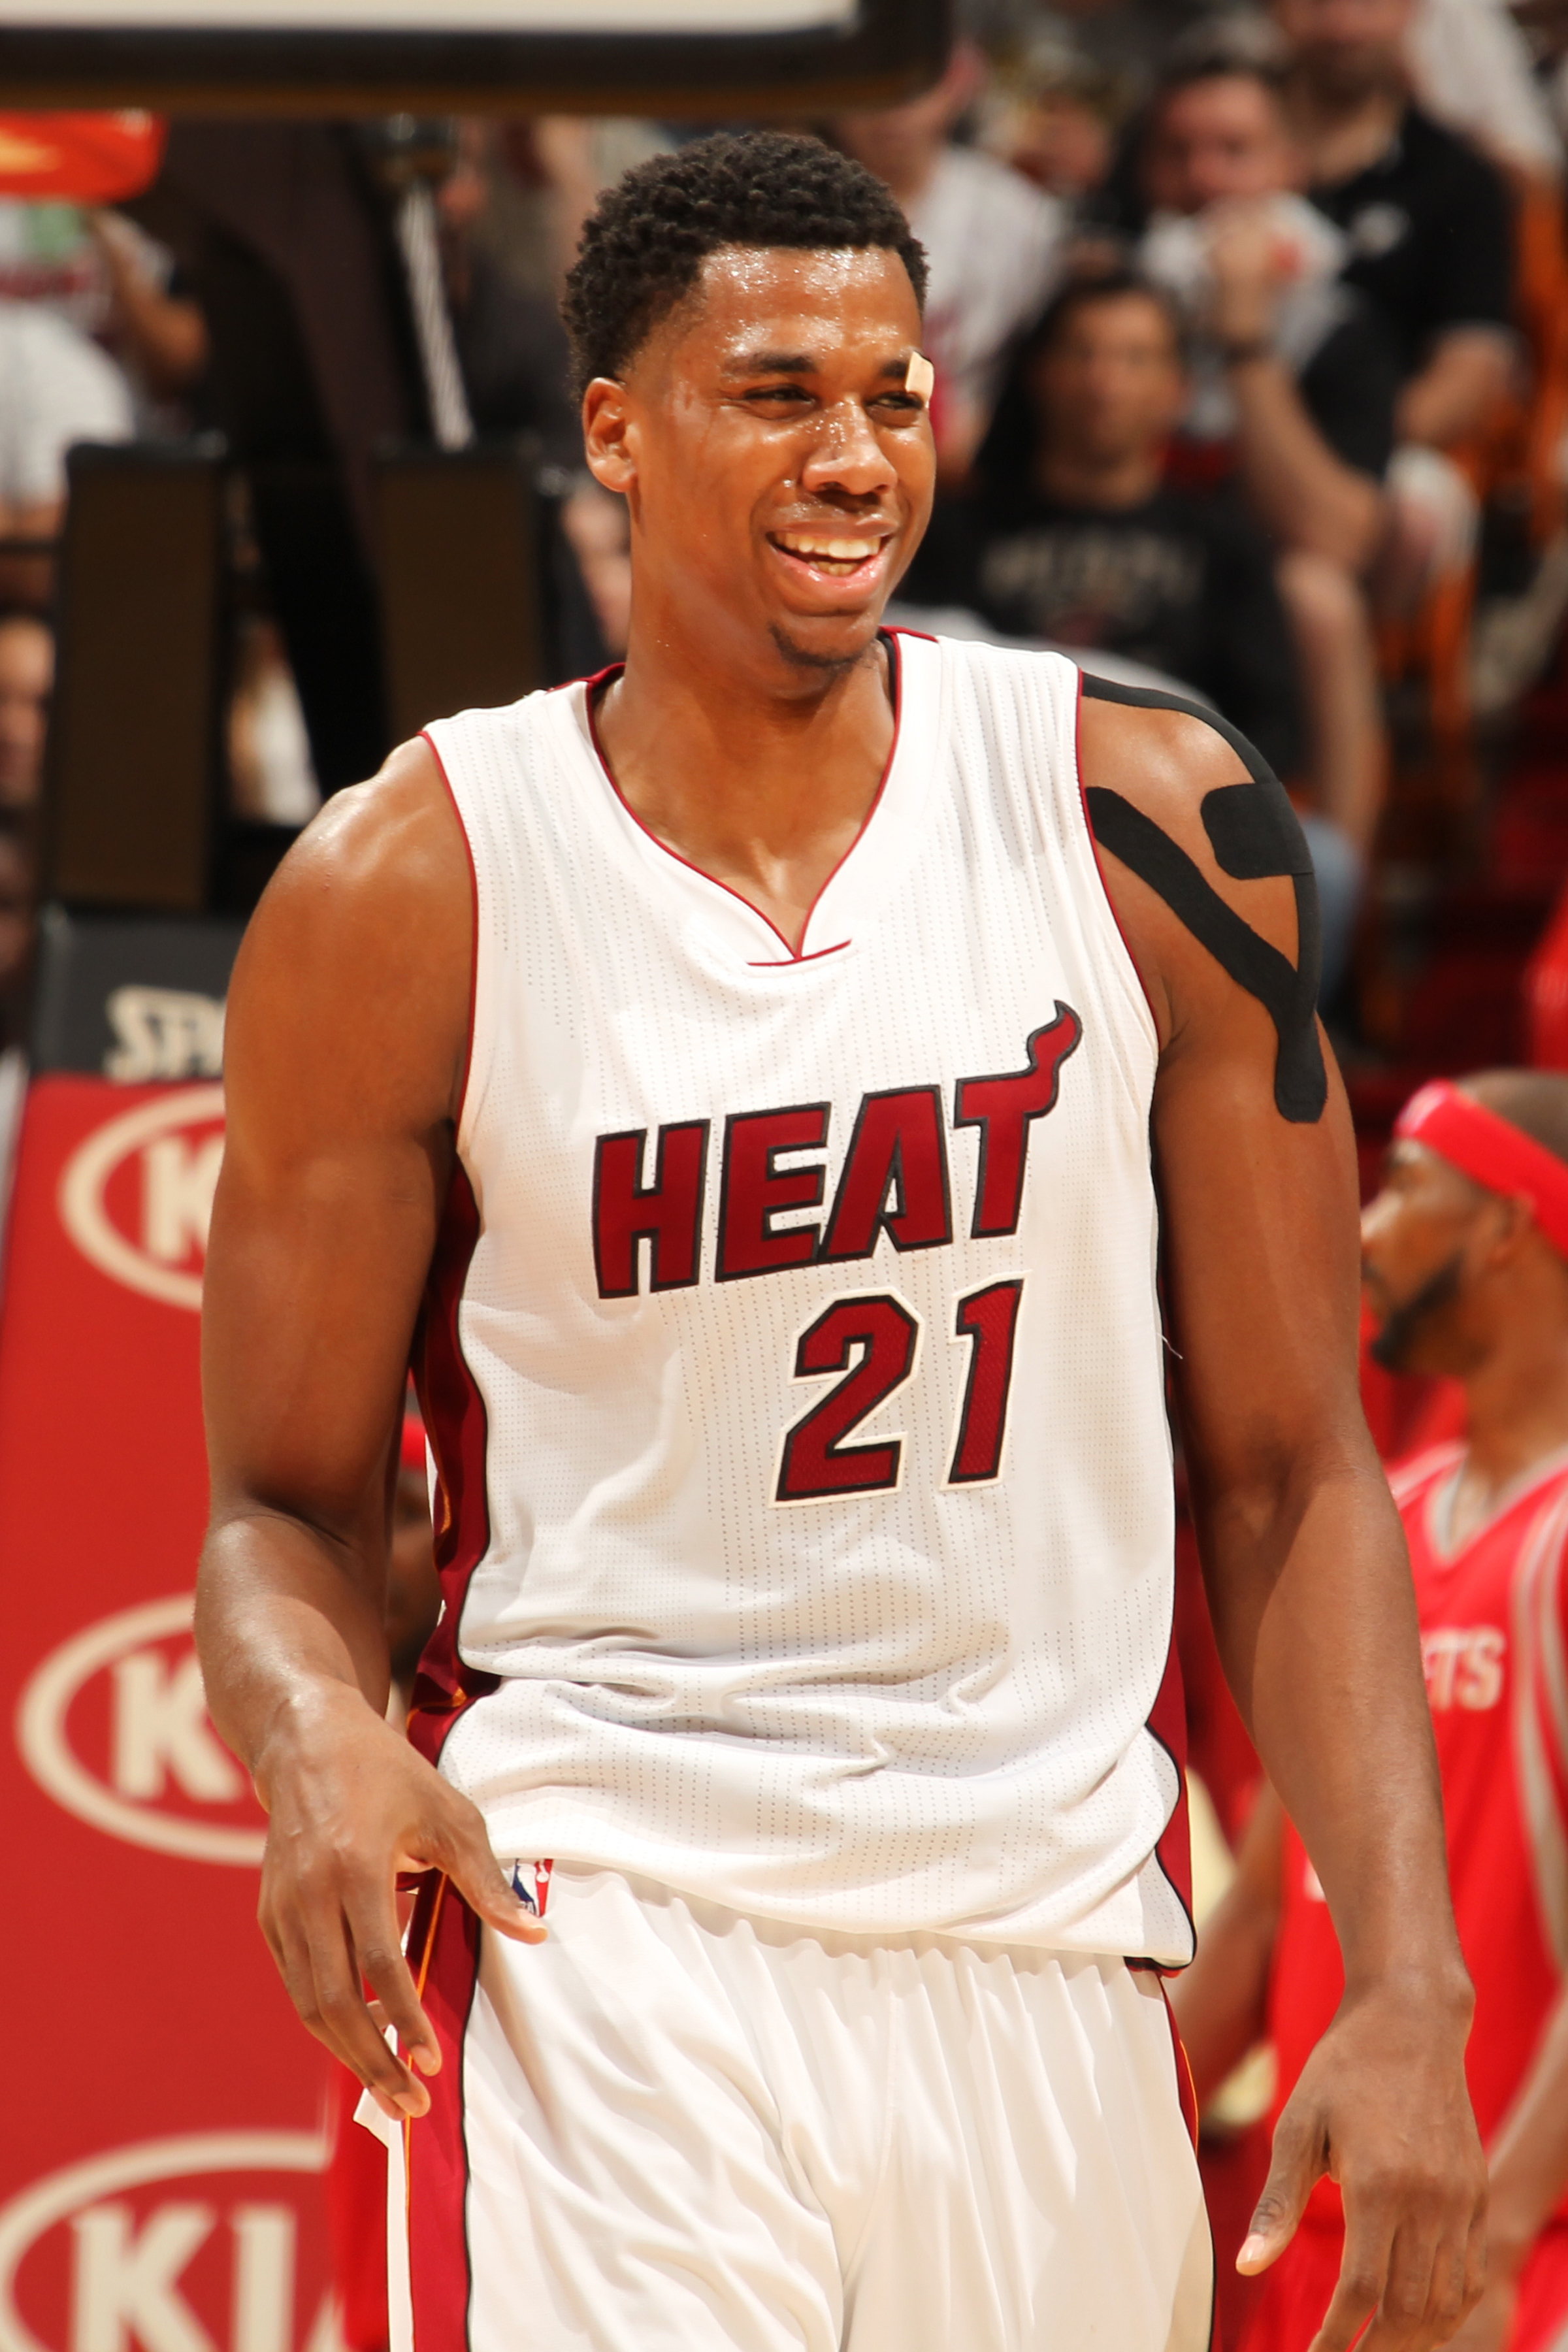 MIAMI, FL - NOVEMBER 1: Hassan Whiteside #21 of the Miami Heat during the game against the Houston Rockets on November 1, 2015 at American Airlines Arena in Miami, Florida. (Photo by Issac Baldizon/NBAE via Getty Images)